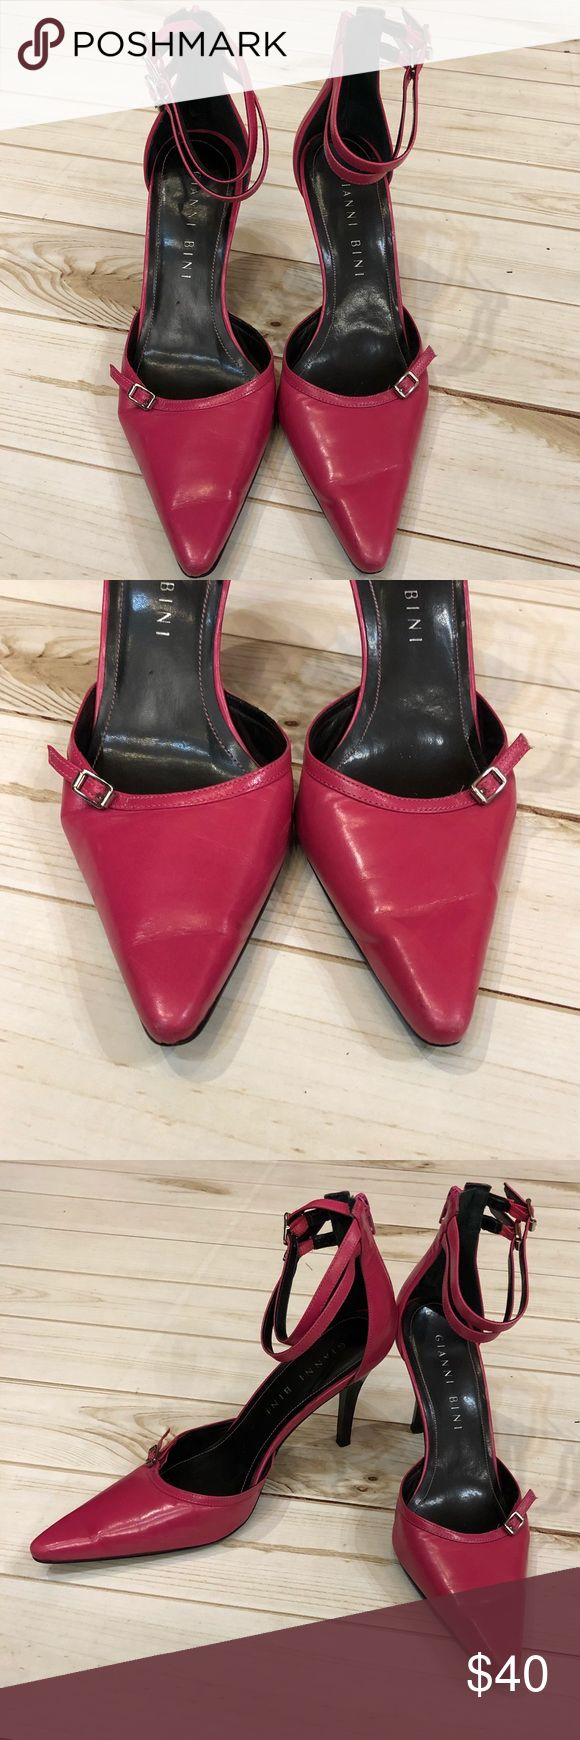 Gianni Bini 8 1/2 pink pointy toe Heels💕 Cute and trendy! Perfect for your next night out! Pair with pant suits, dresses, skirts, and your favorite pair of jeans!! In good condition!! 💕💕 Gianni Bini Shoes Heels